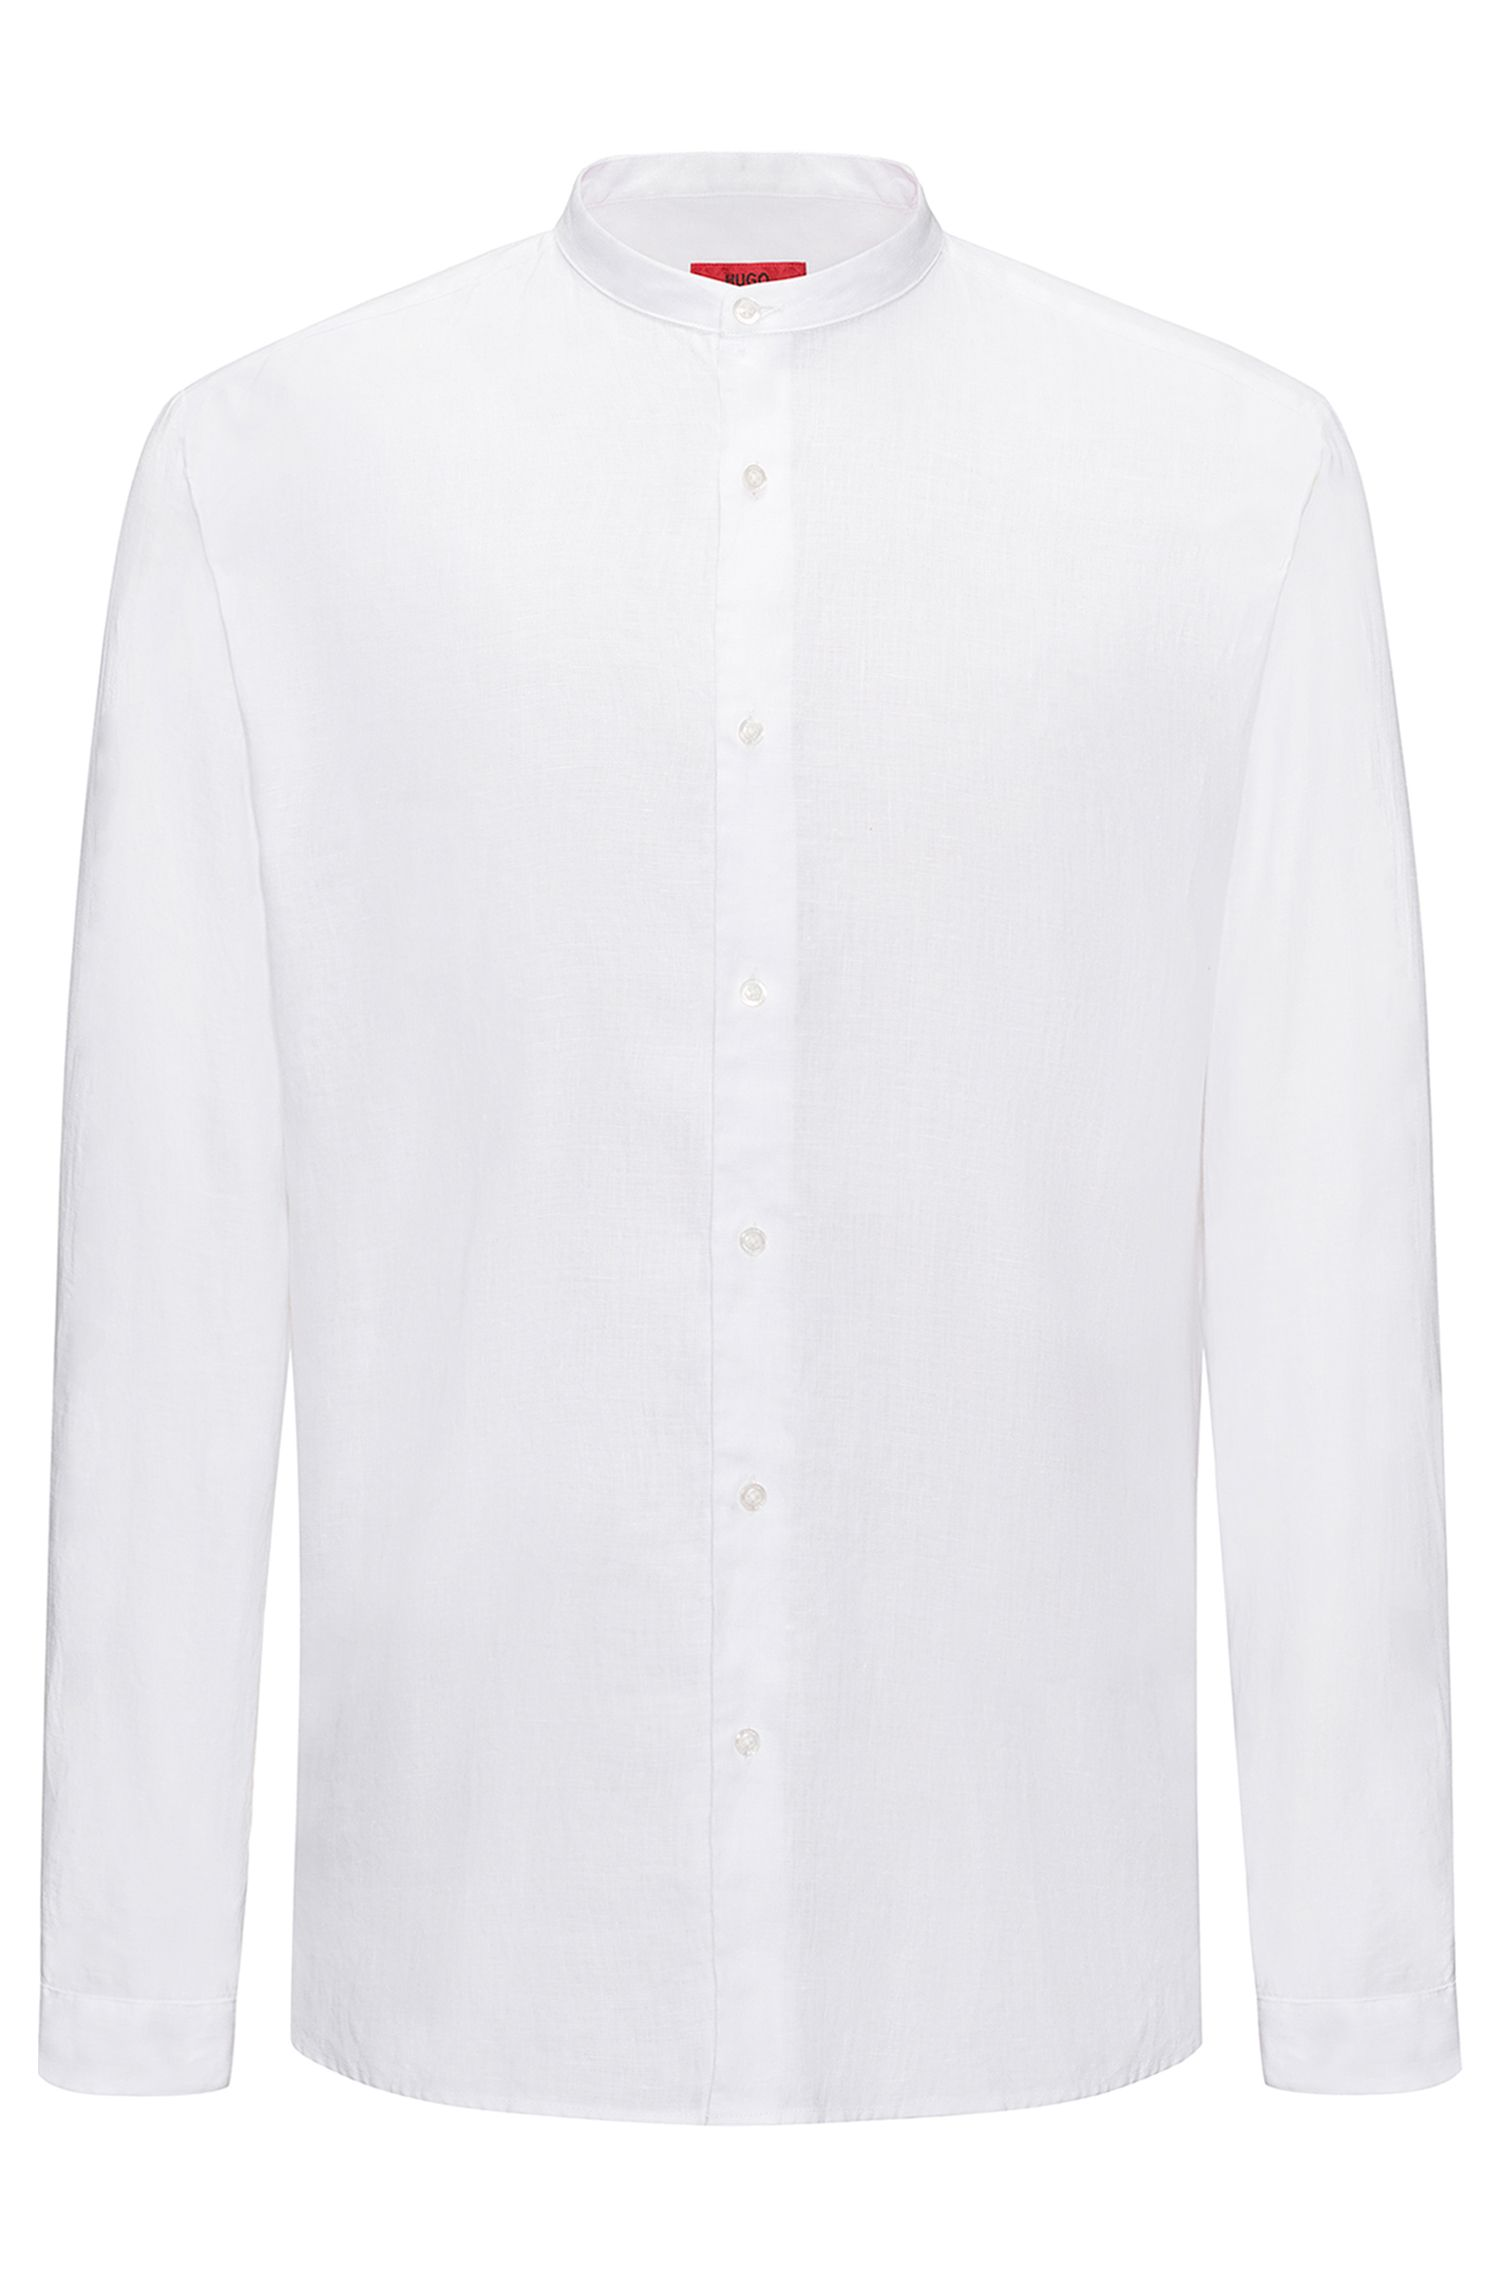 Linen Sport Shirt, Regular Fit | Eddison W